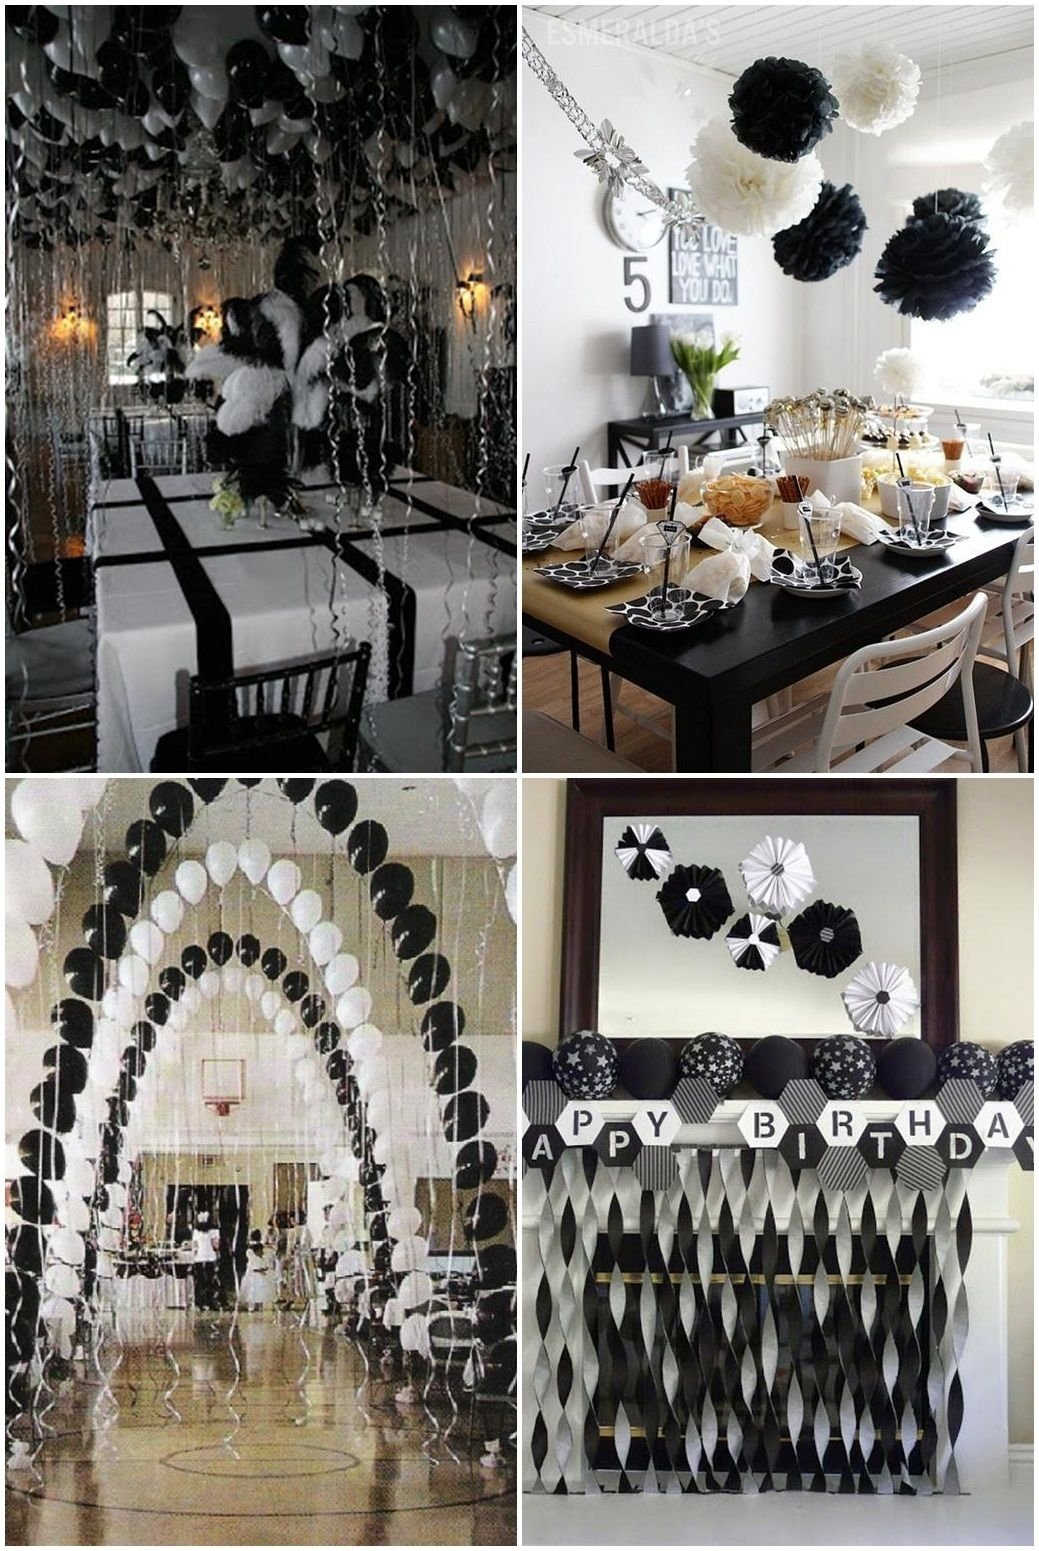 10 Spectacular Ideas For 25Th Birthday Party Black And White Graduation Father Daughter Dance